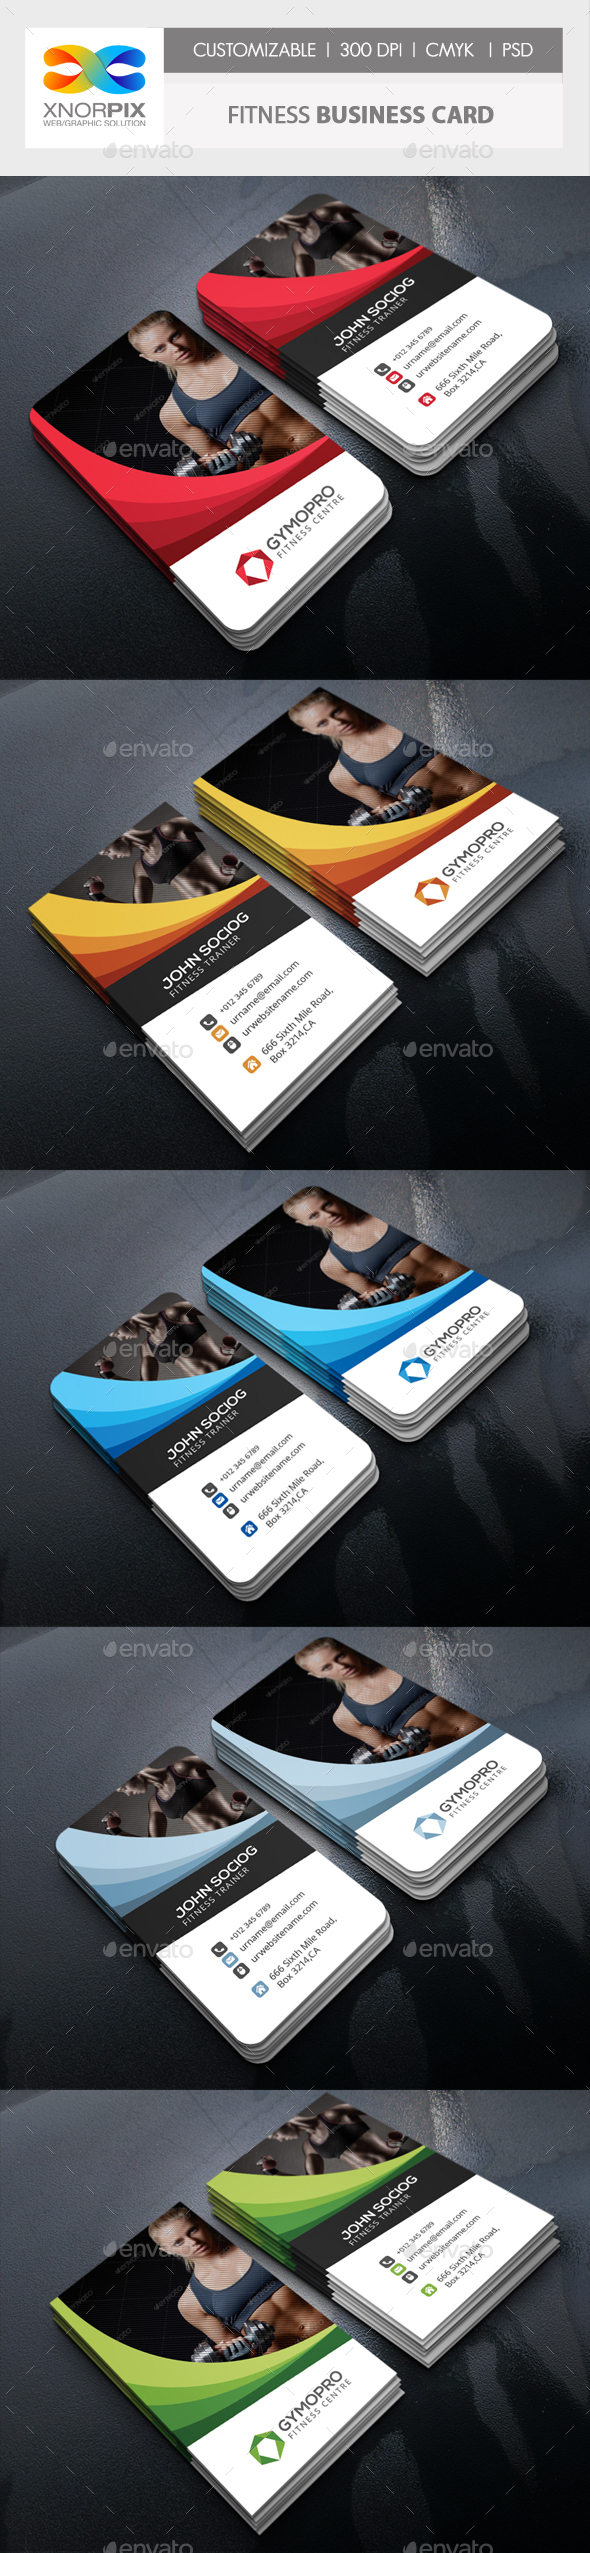 Fitness Business Card by -axnorpix | GraphicRiver